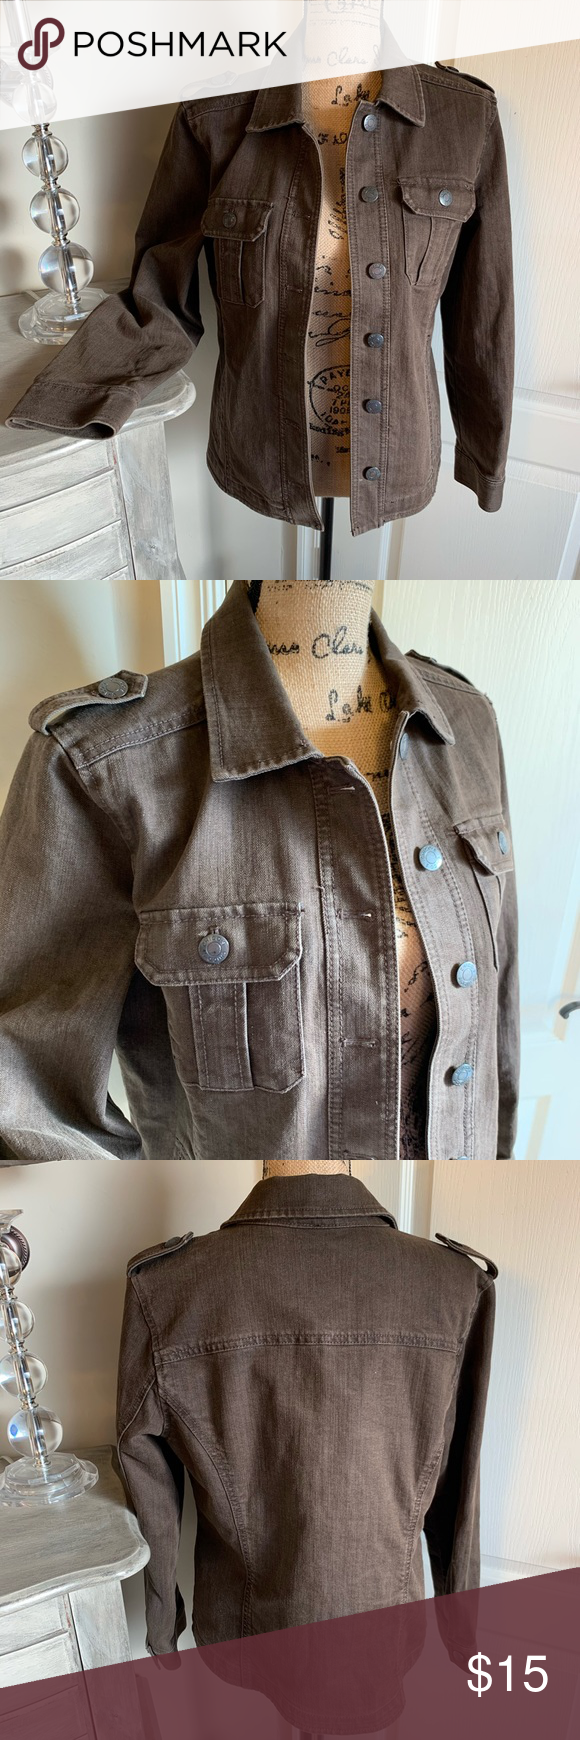 Brown Jean Jacket Like New Brown Jean Jacket Underarm To Underarm Across The Back 21 Underarm To Wrist 17 5 Neck To Brown Jean Jacket Brown Jeans Jean Jacket [ png ]